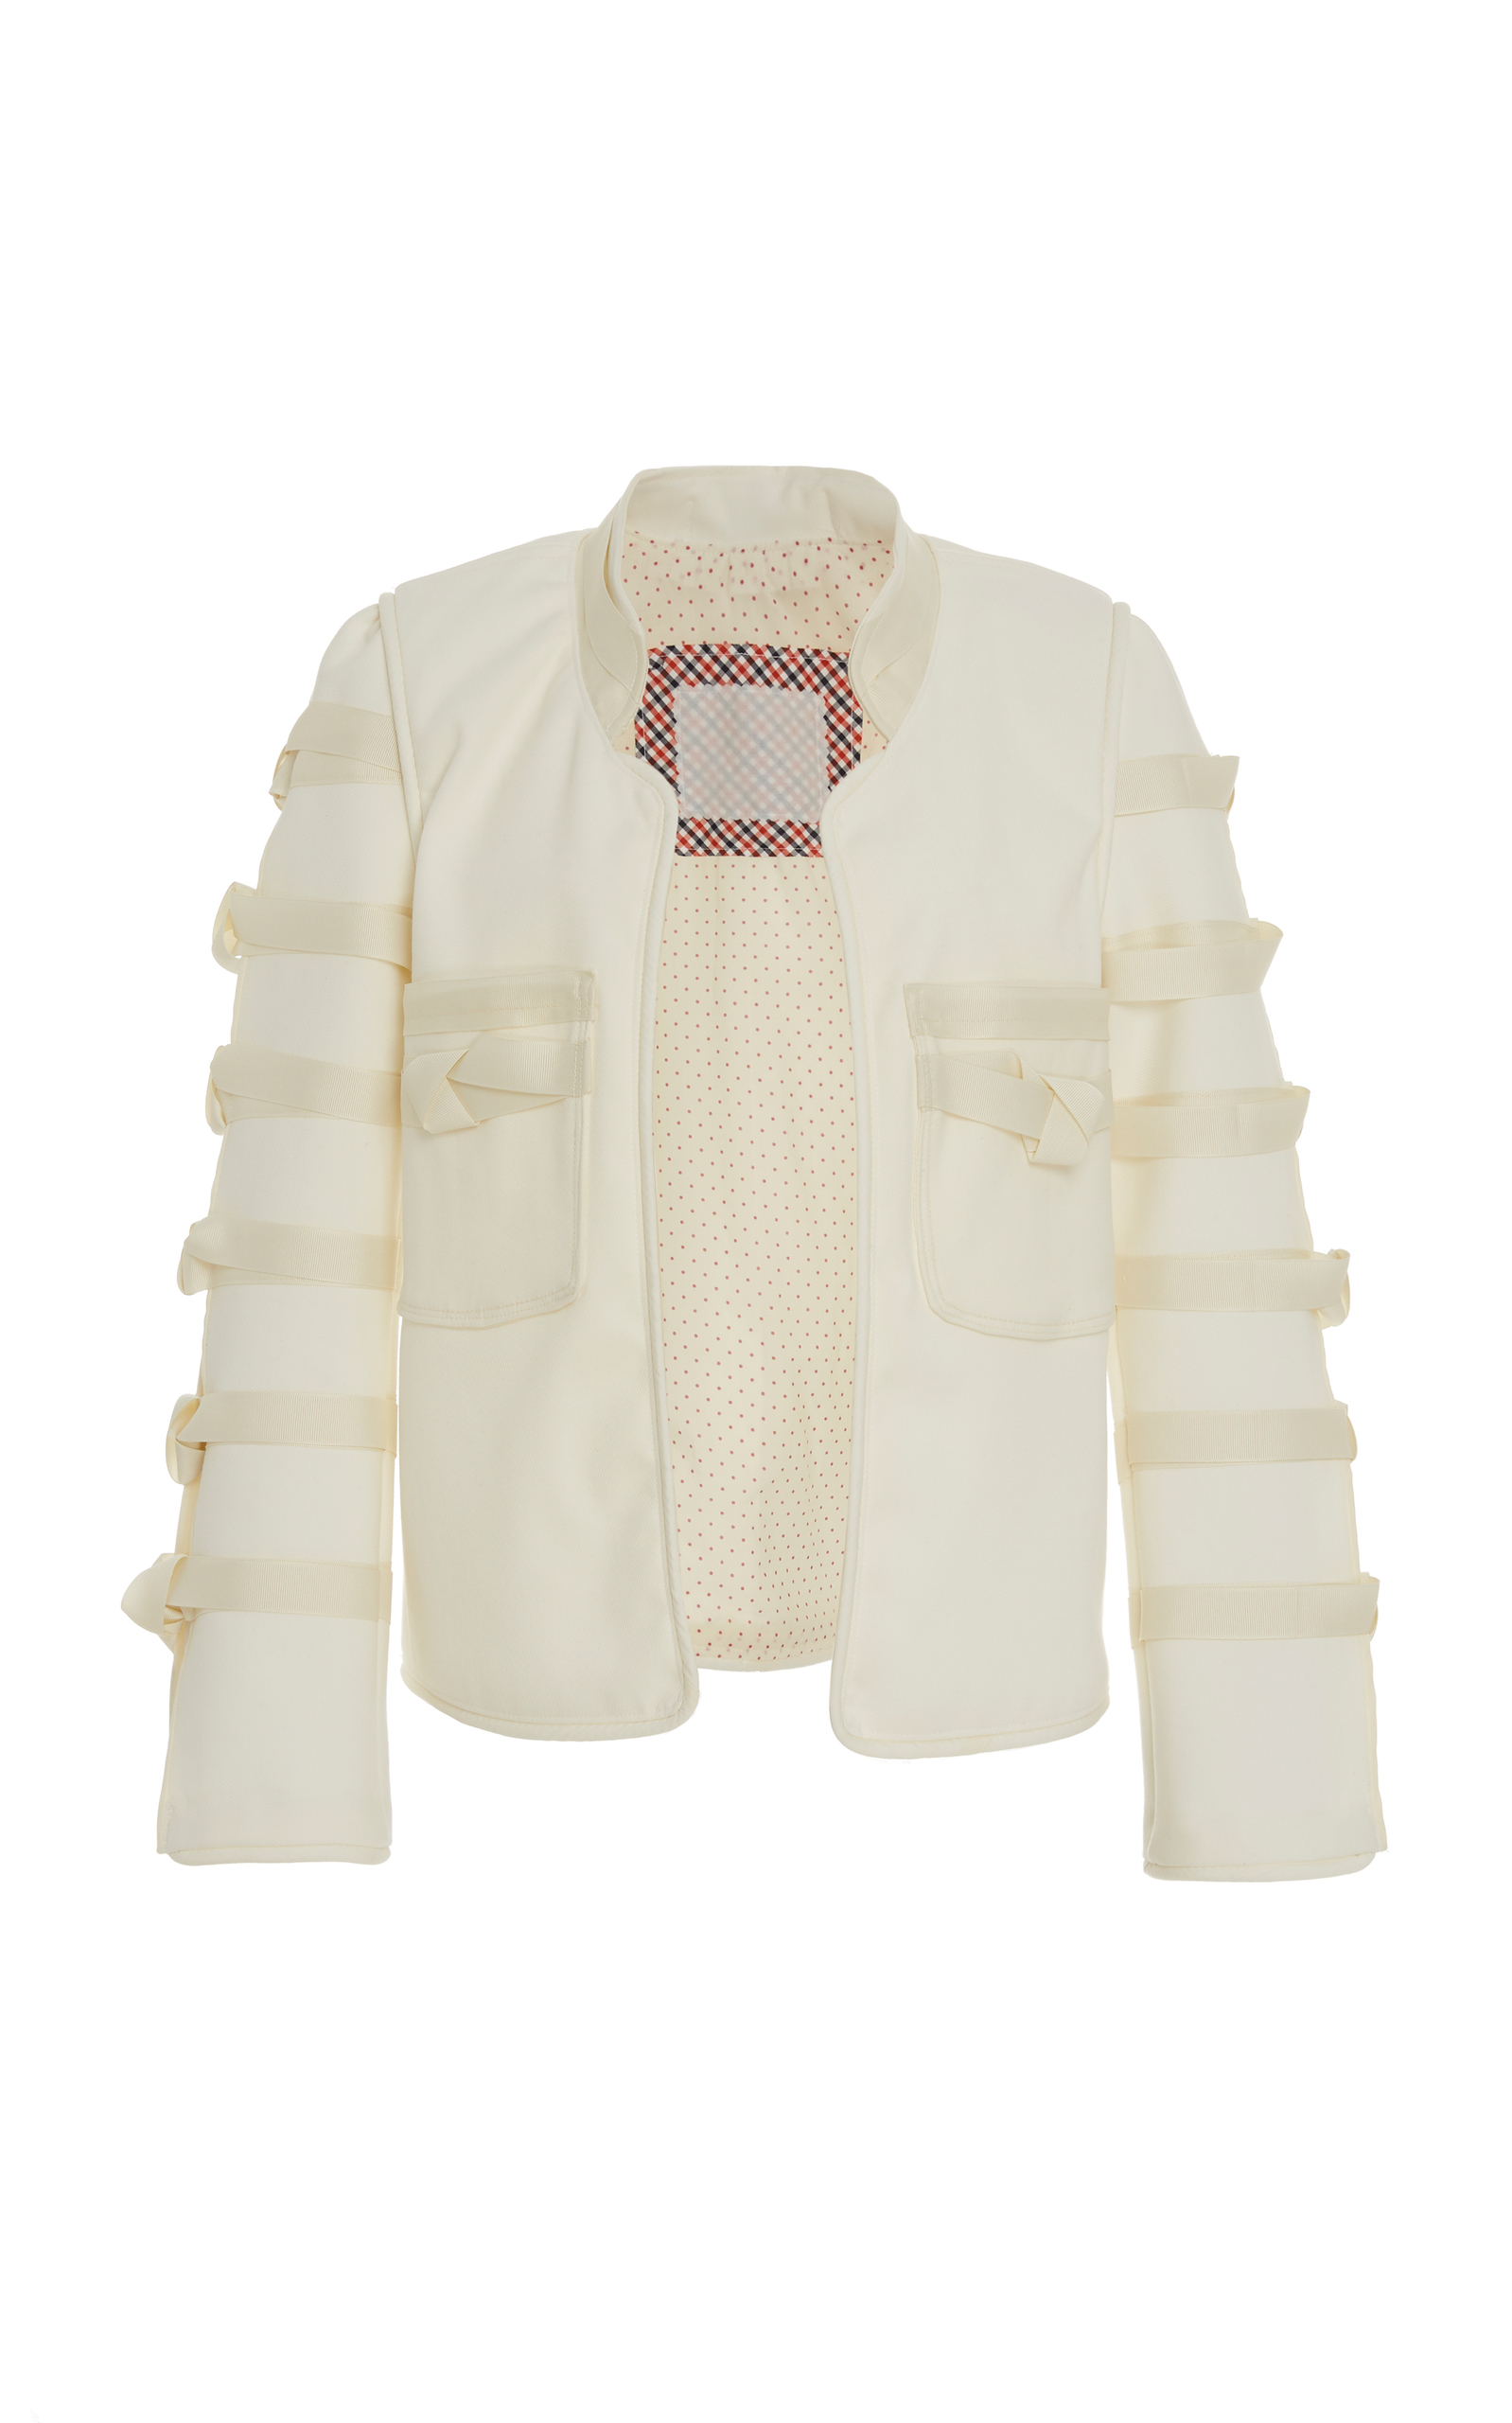 ALIX OF BOHEMIA Limited Edition Georgia Knot Jacket in White